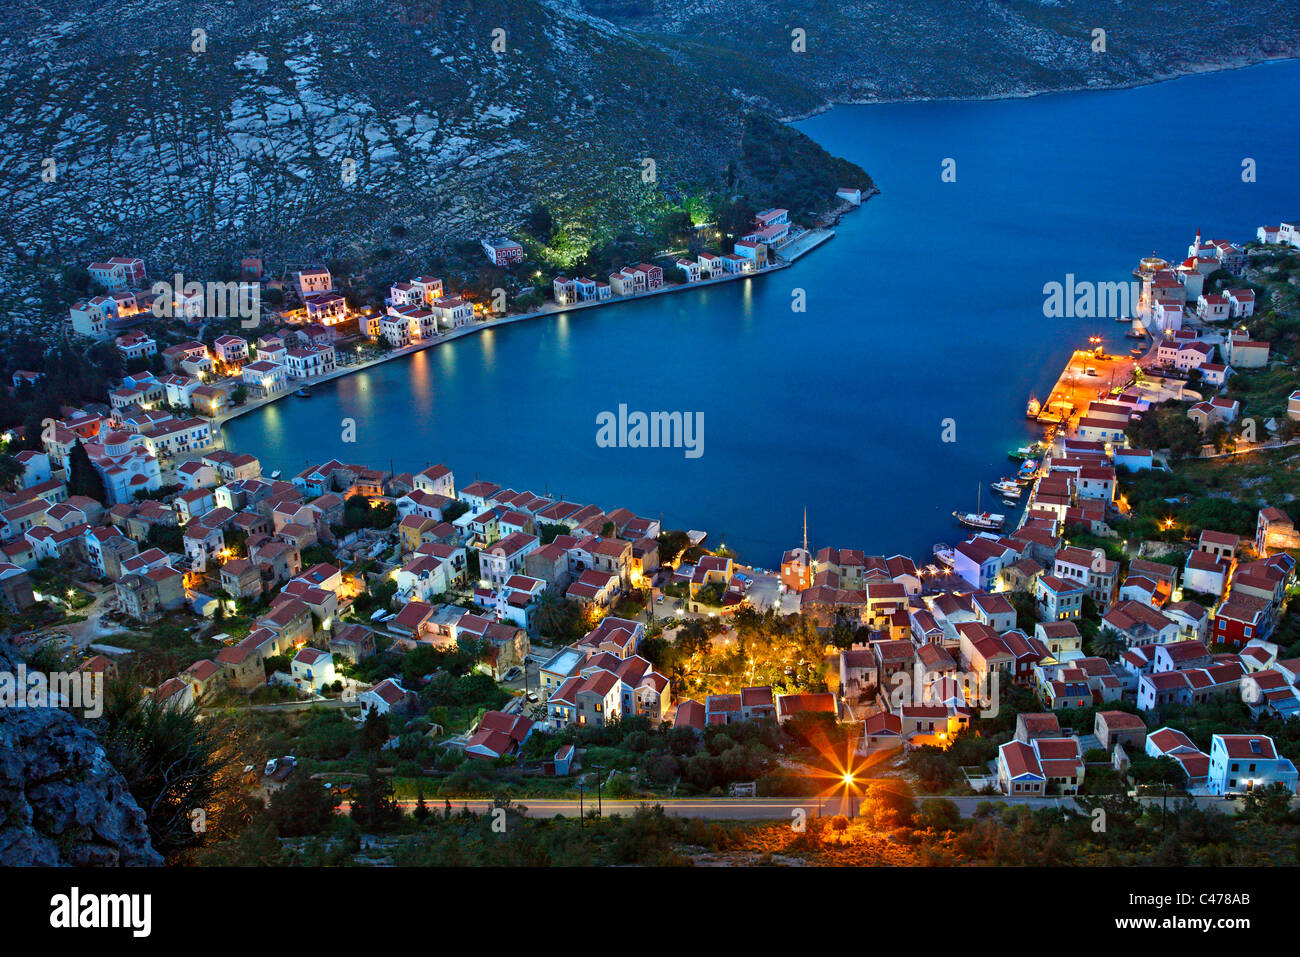 Panoramic view of the village and harbor of Kastellorizo island from the path that goes to Saint George Monastery. - Stock Image